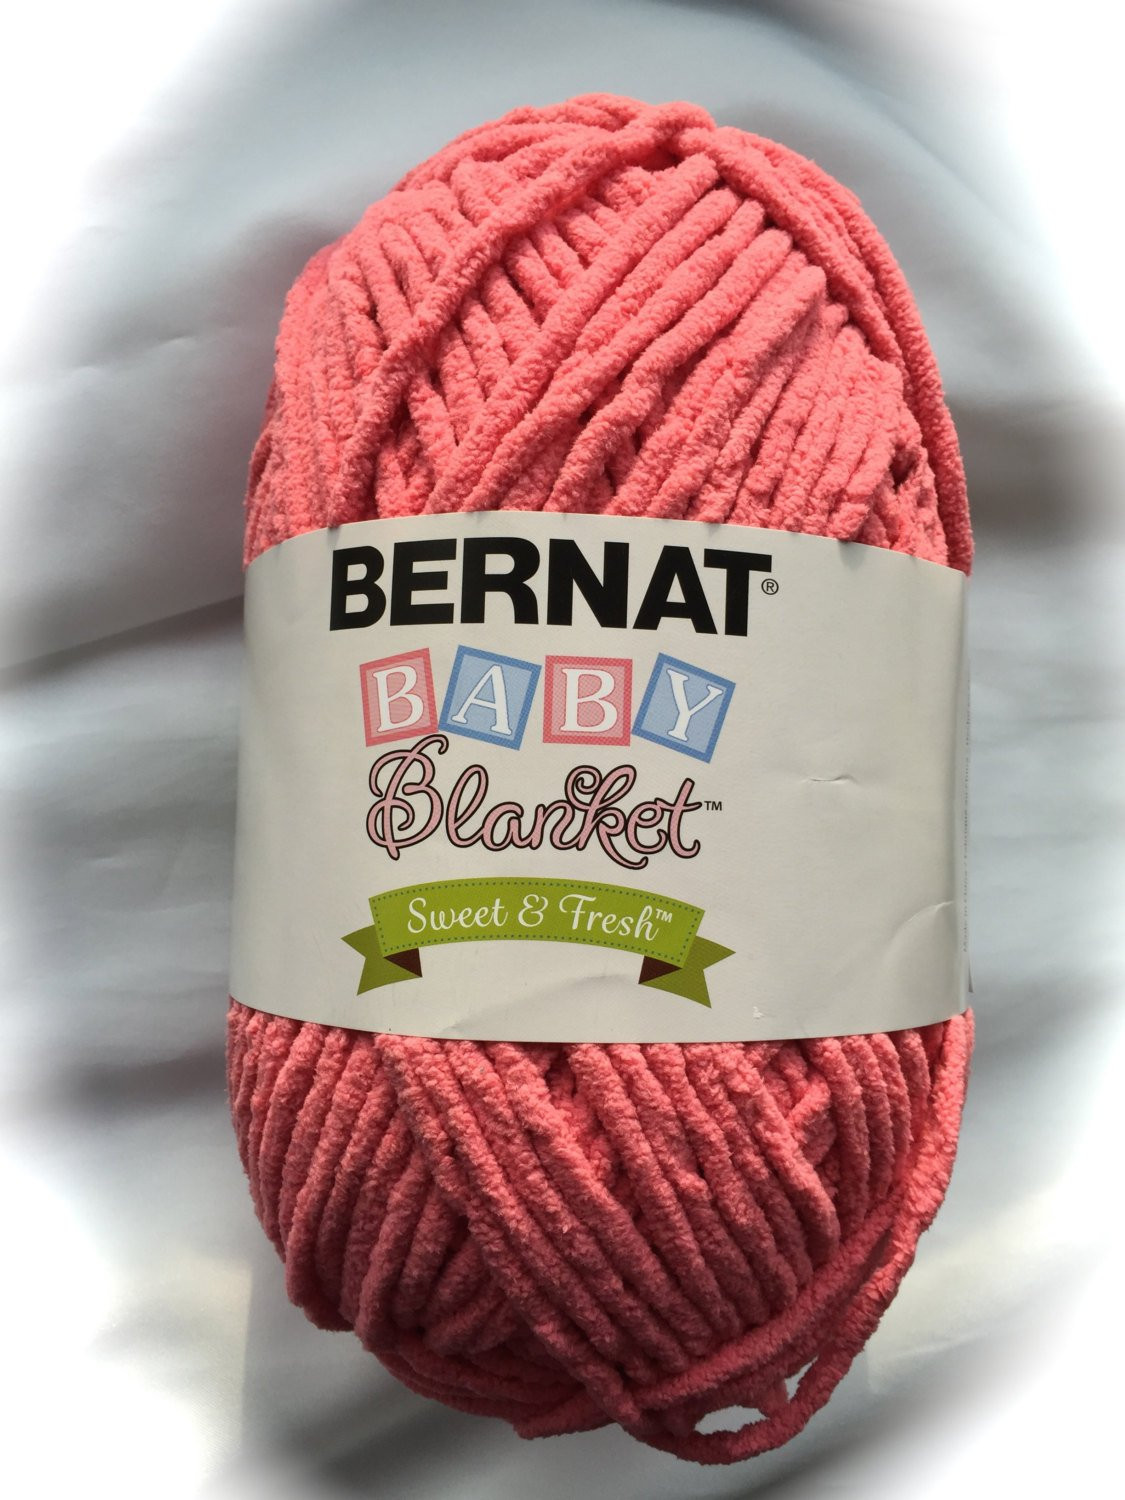 Bernat Blanket Yarn Unique Coral Crocus Bernat Baby Blanket Sweet & Fresh Yarn Big Of Beautiful 42 Models Bernat Blanket Yarn